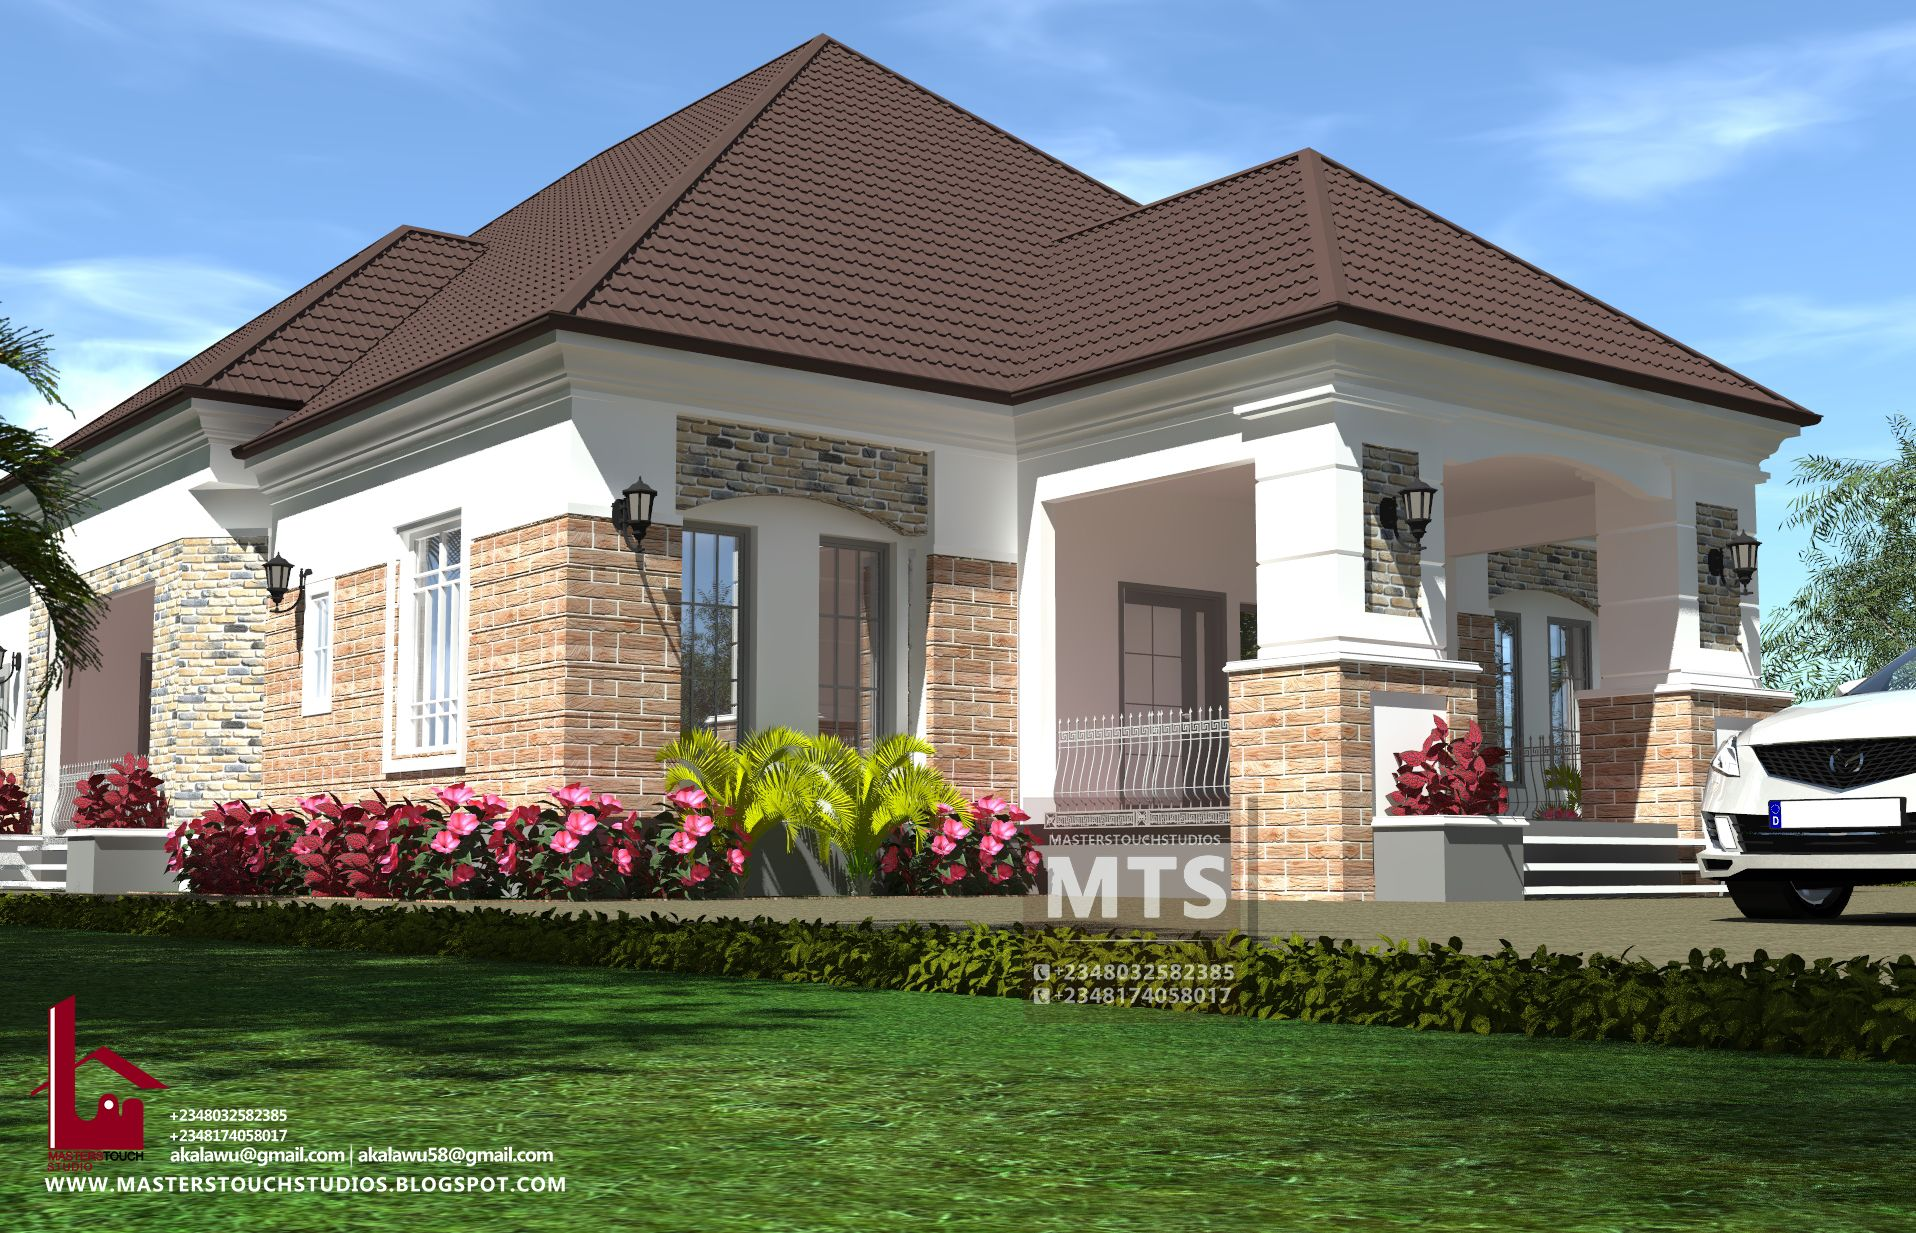 5 Bedroom Bungalow Rf 5003 Modern Bungalow House Plans Bungalow House Plans Bungalow House Design